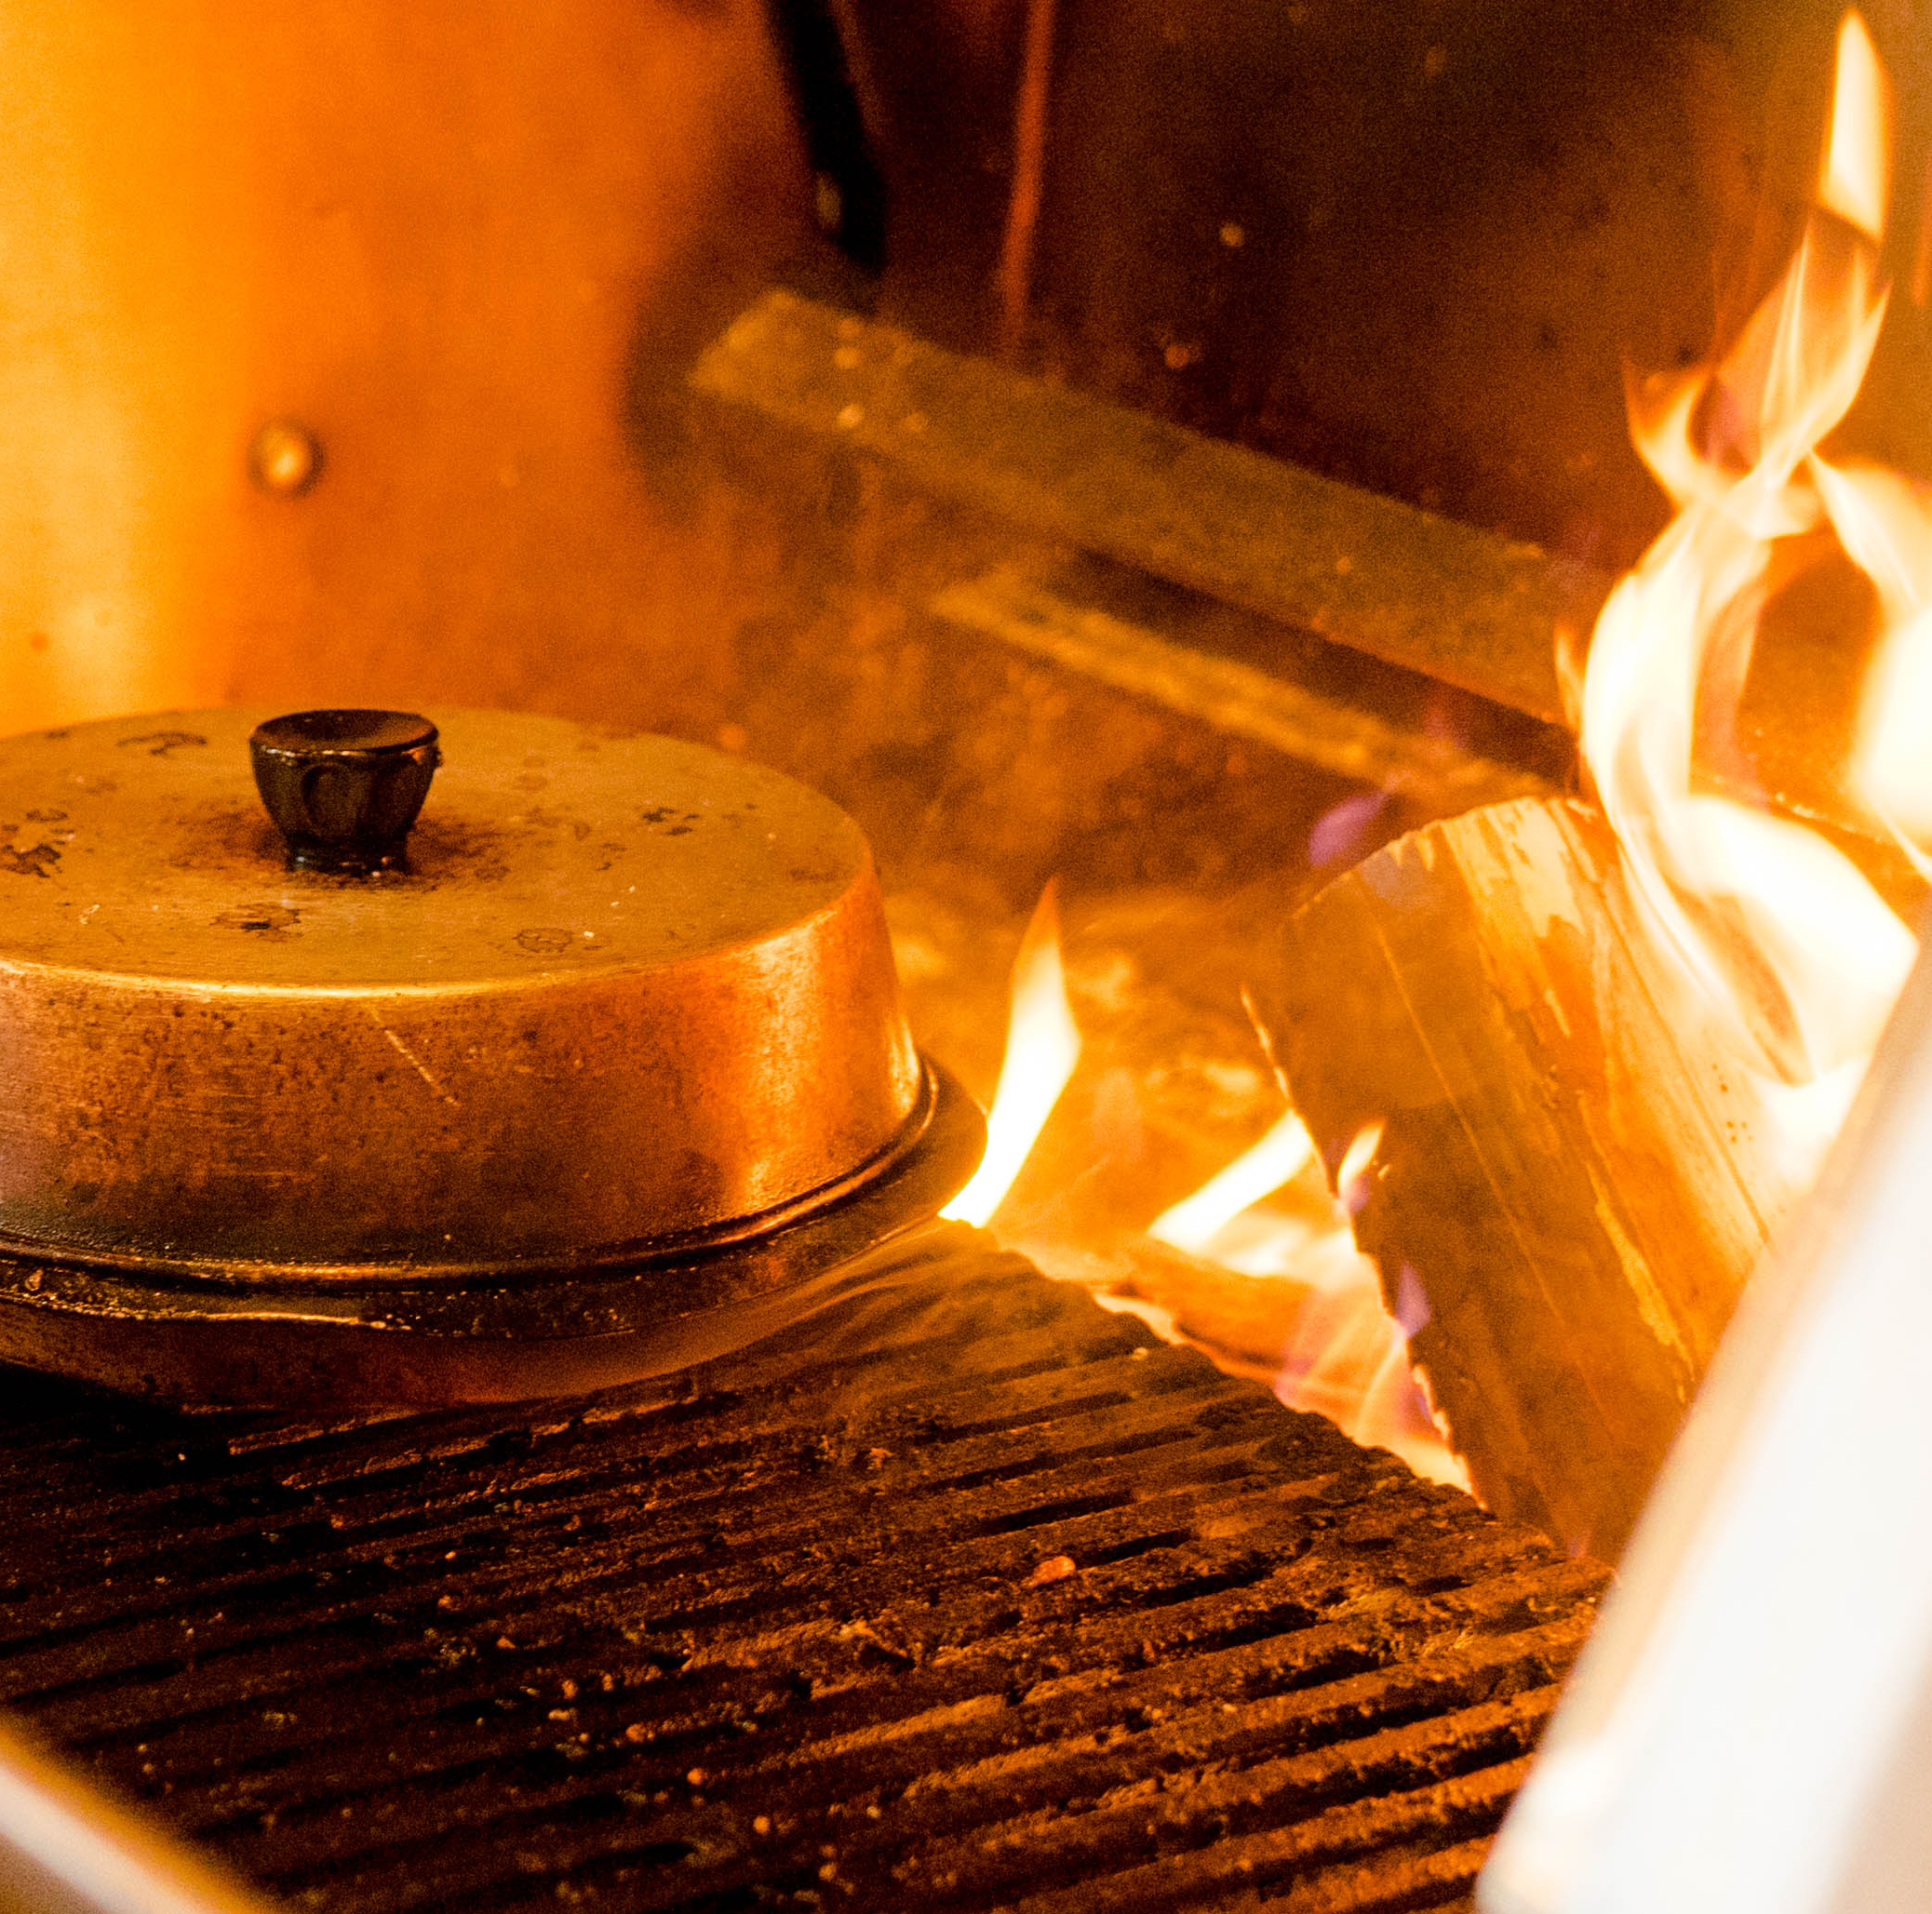 OVENS & EQUIPMENT - Kitchen design and equipment sourcing and training are critical to a sustainable and successful operation. We look forward to helping you pair the right equipment and kitchen training with your operation.